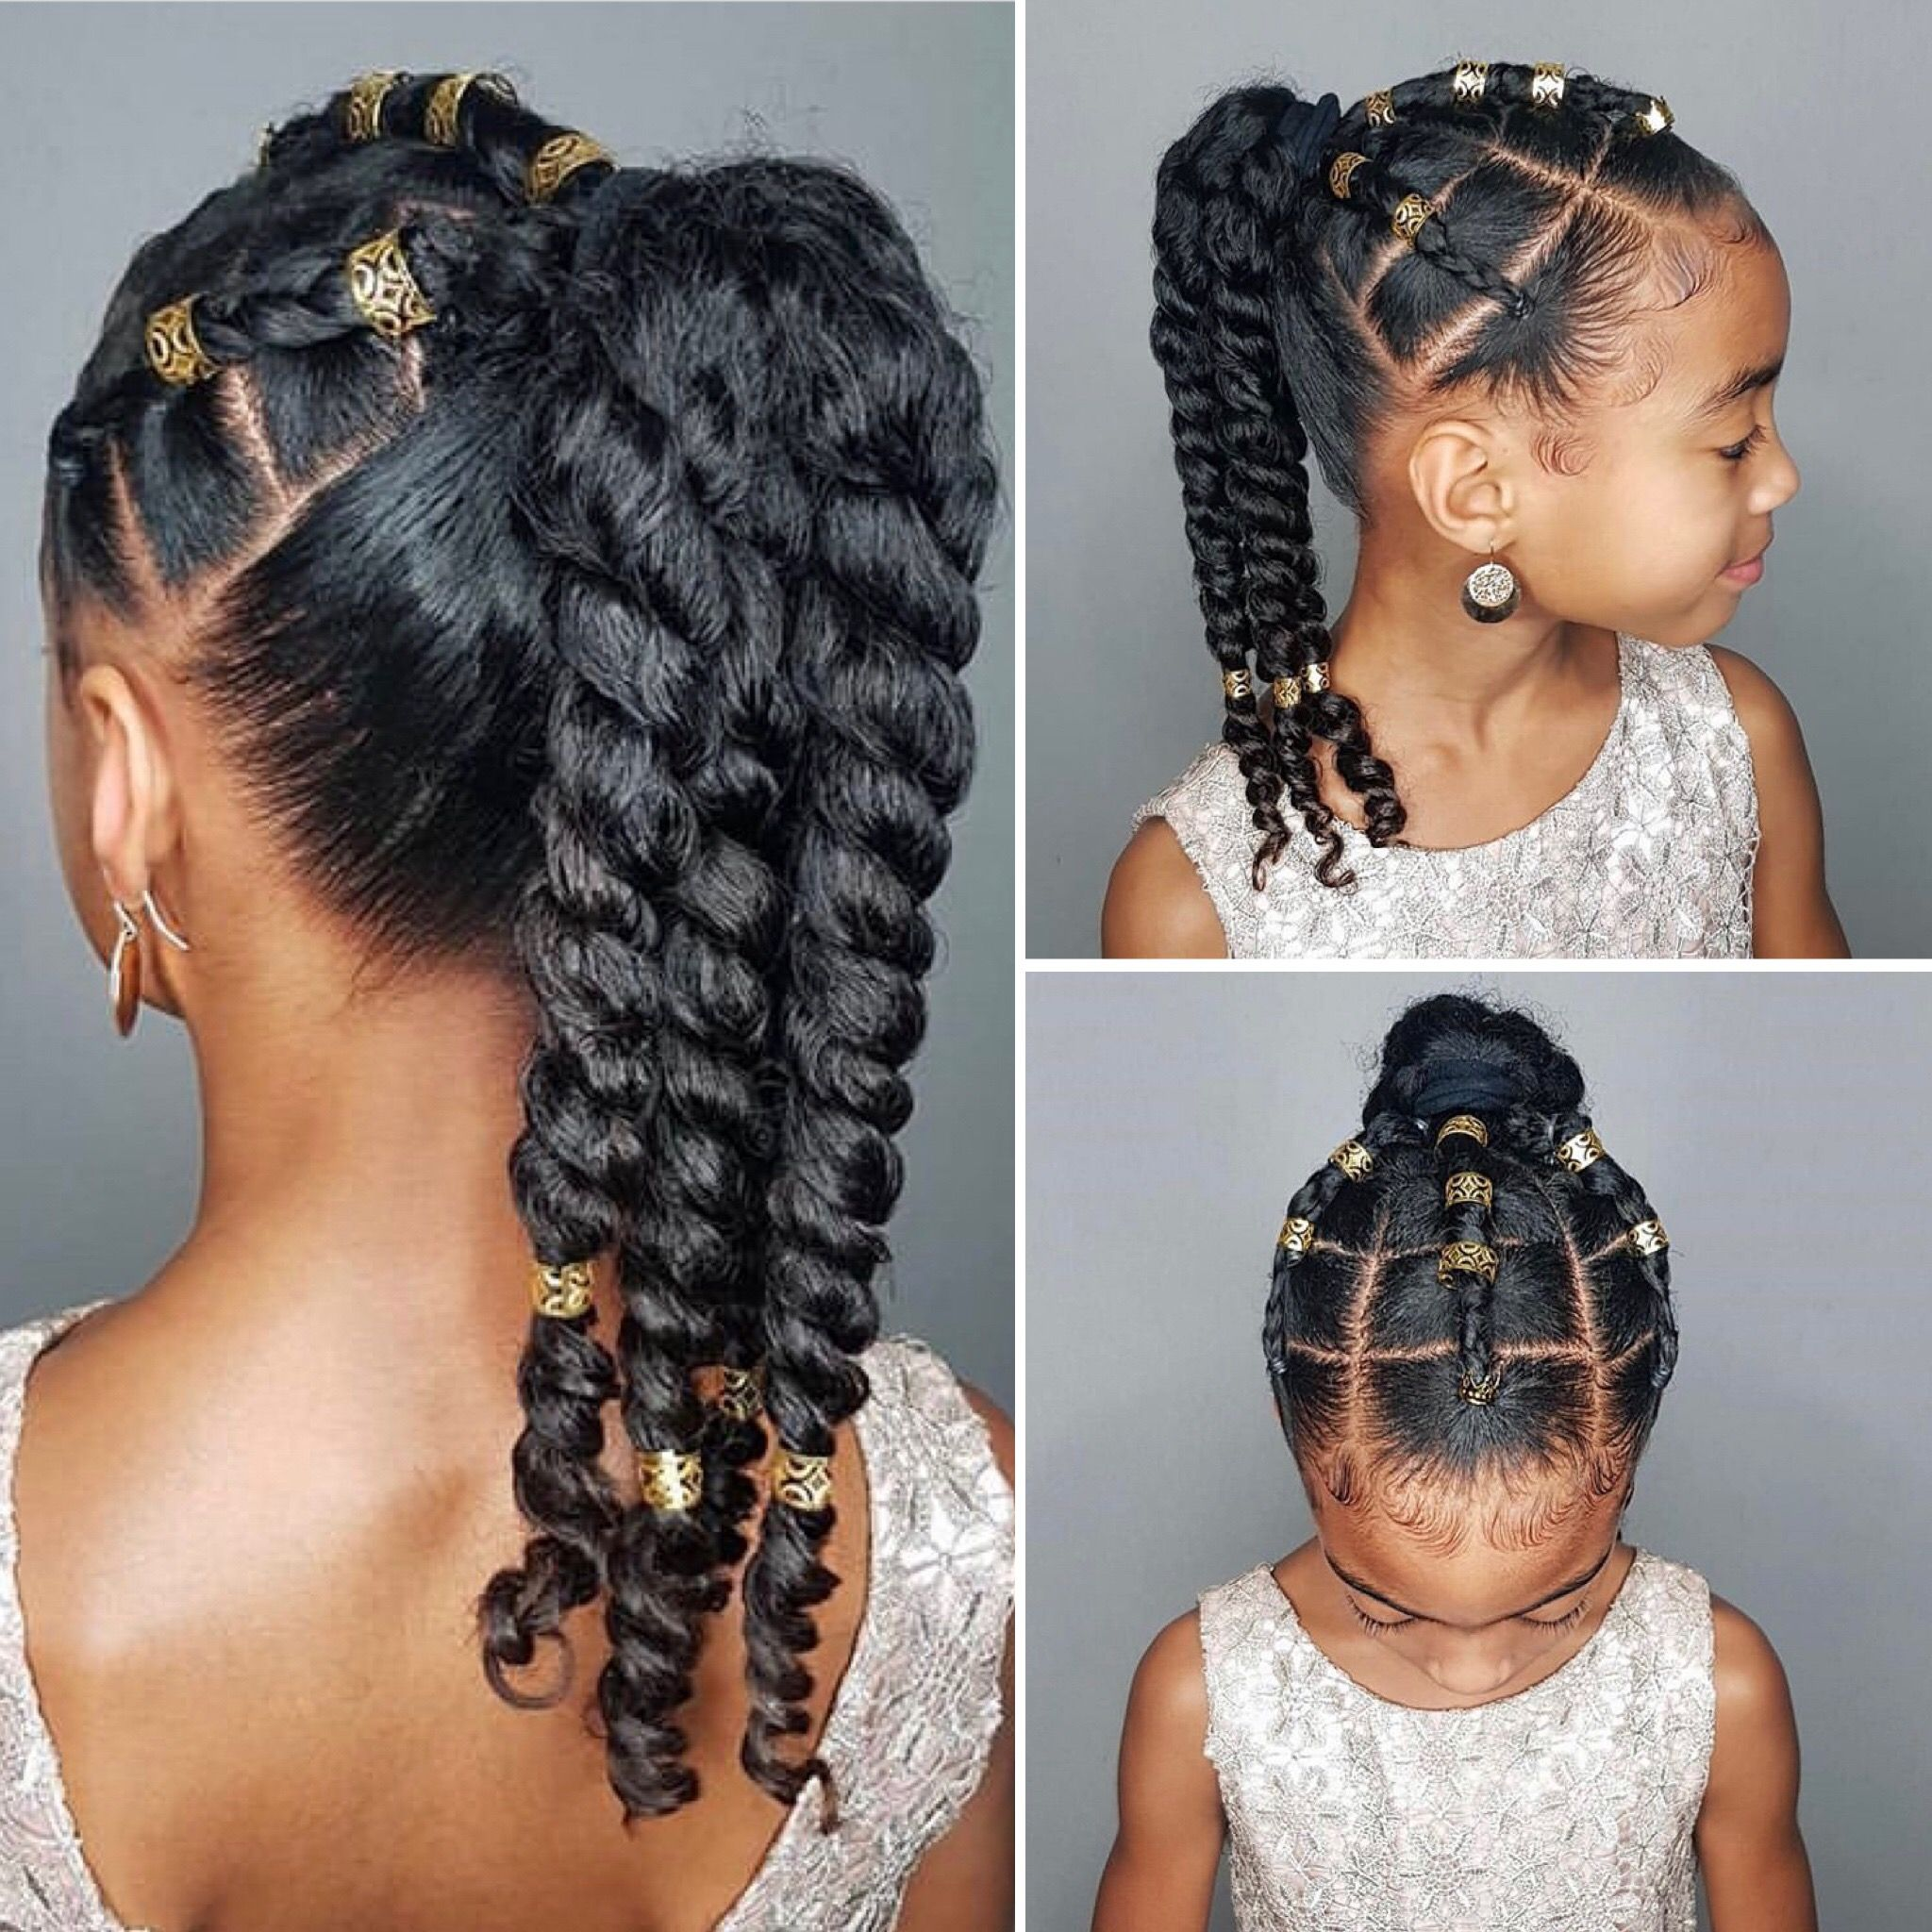 African American Little Girl Hairstyles - 30 Top Trendy ...